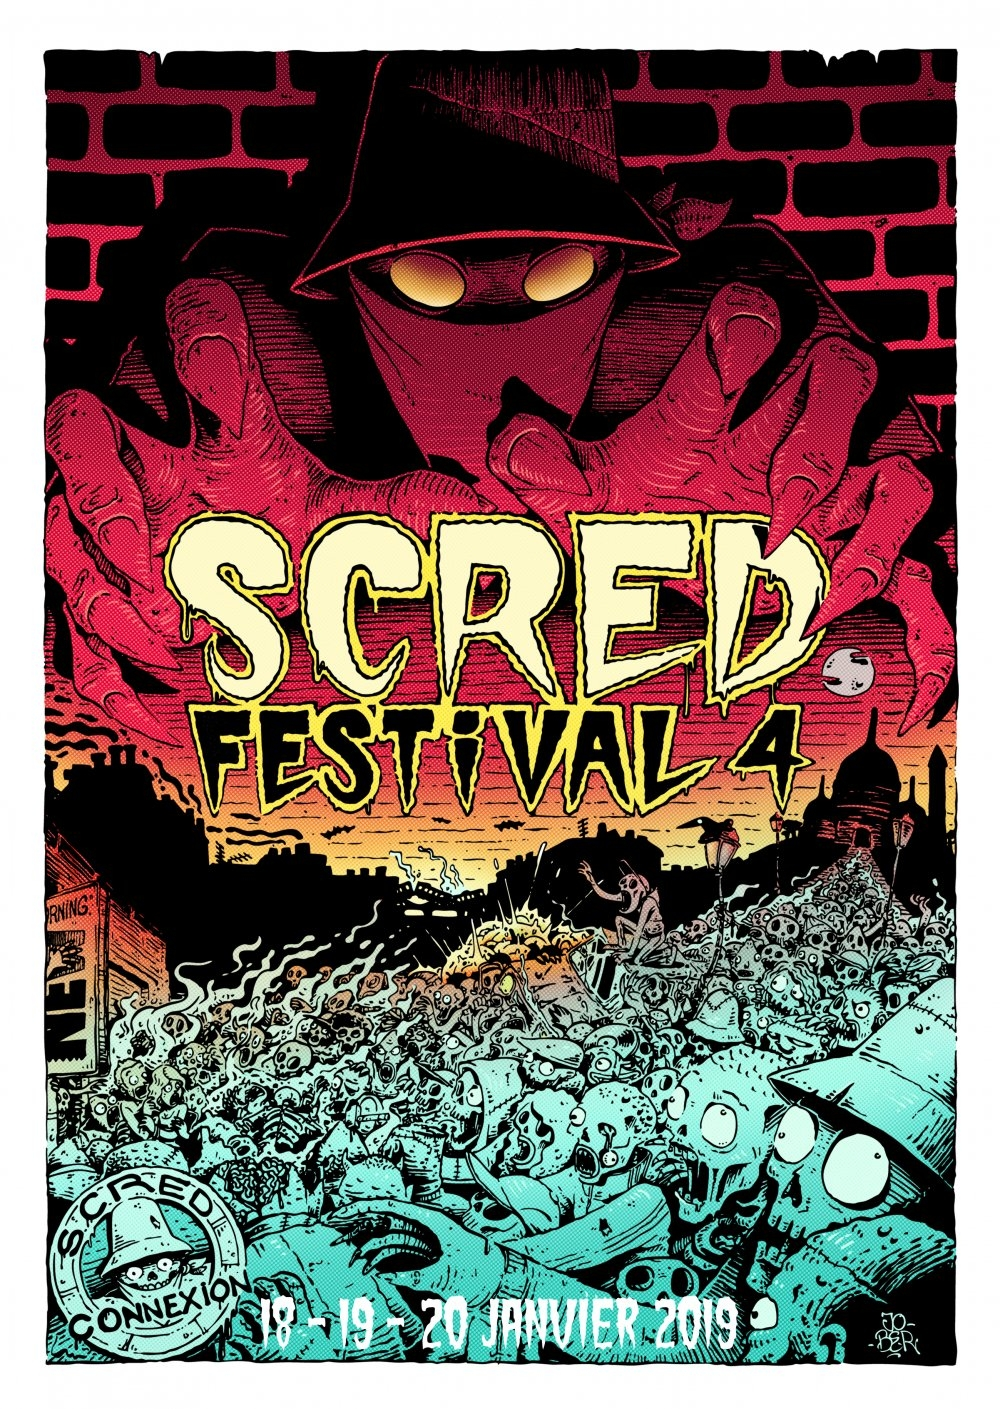 Pack Affiches Scred Festival